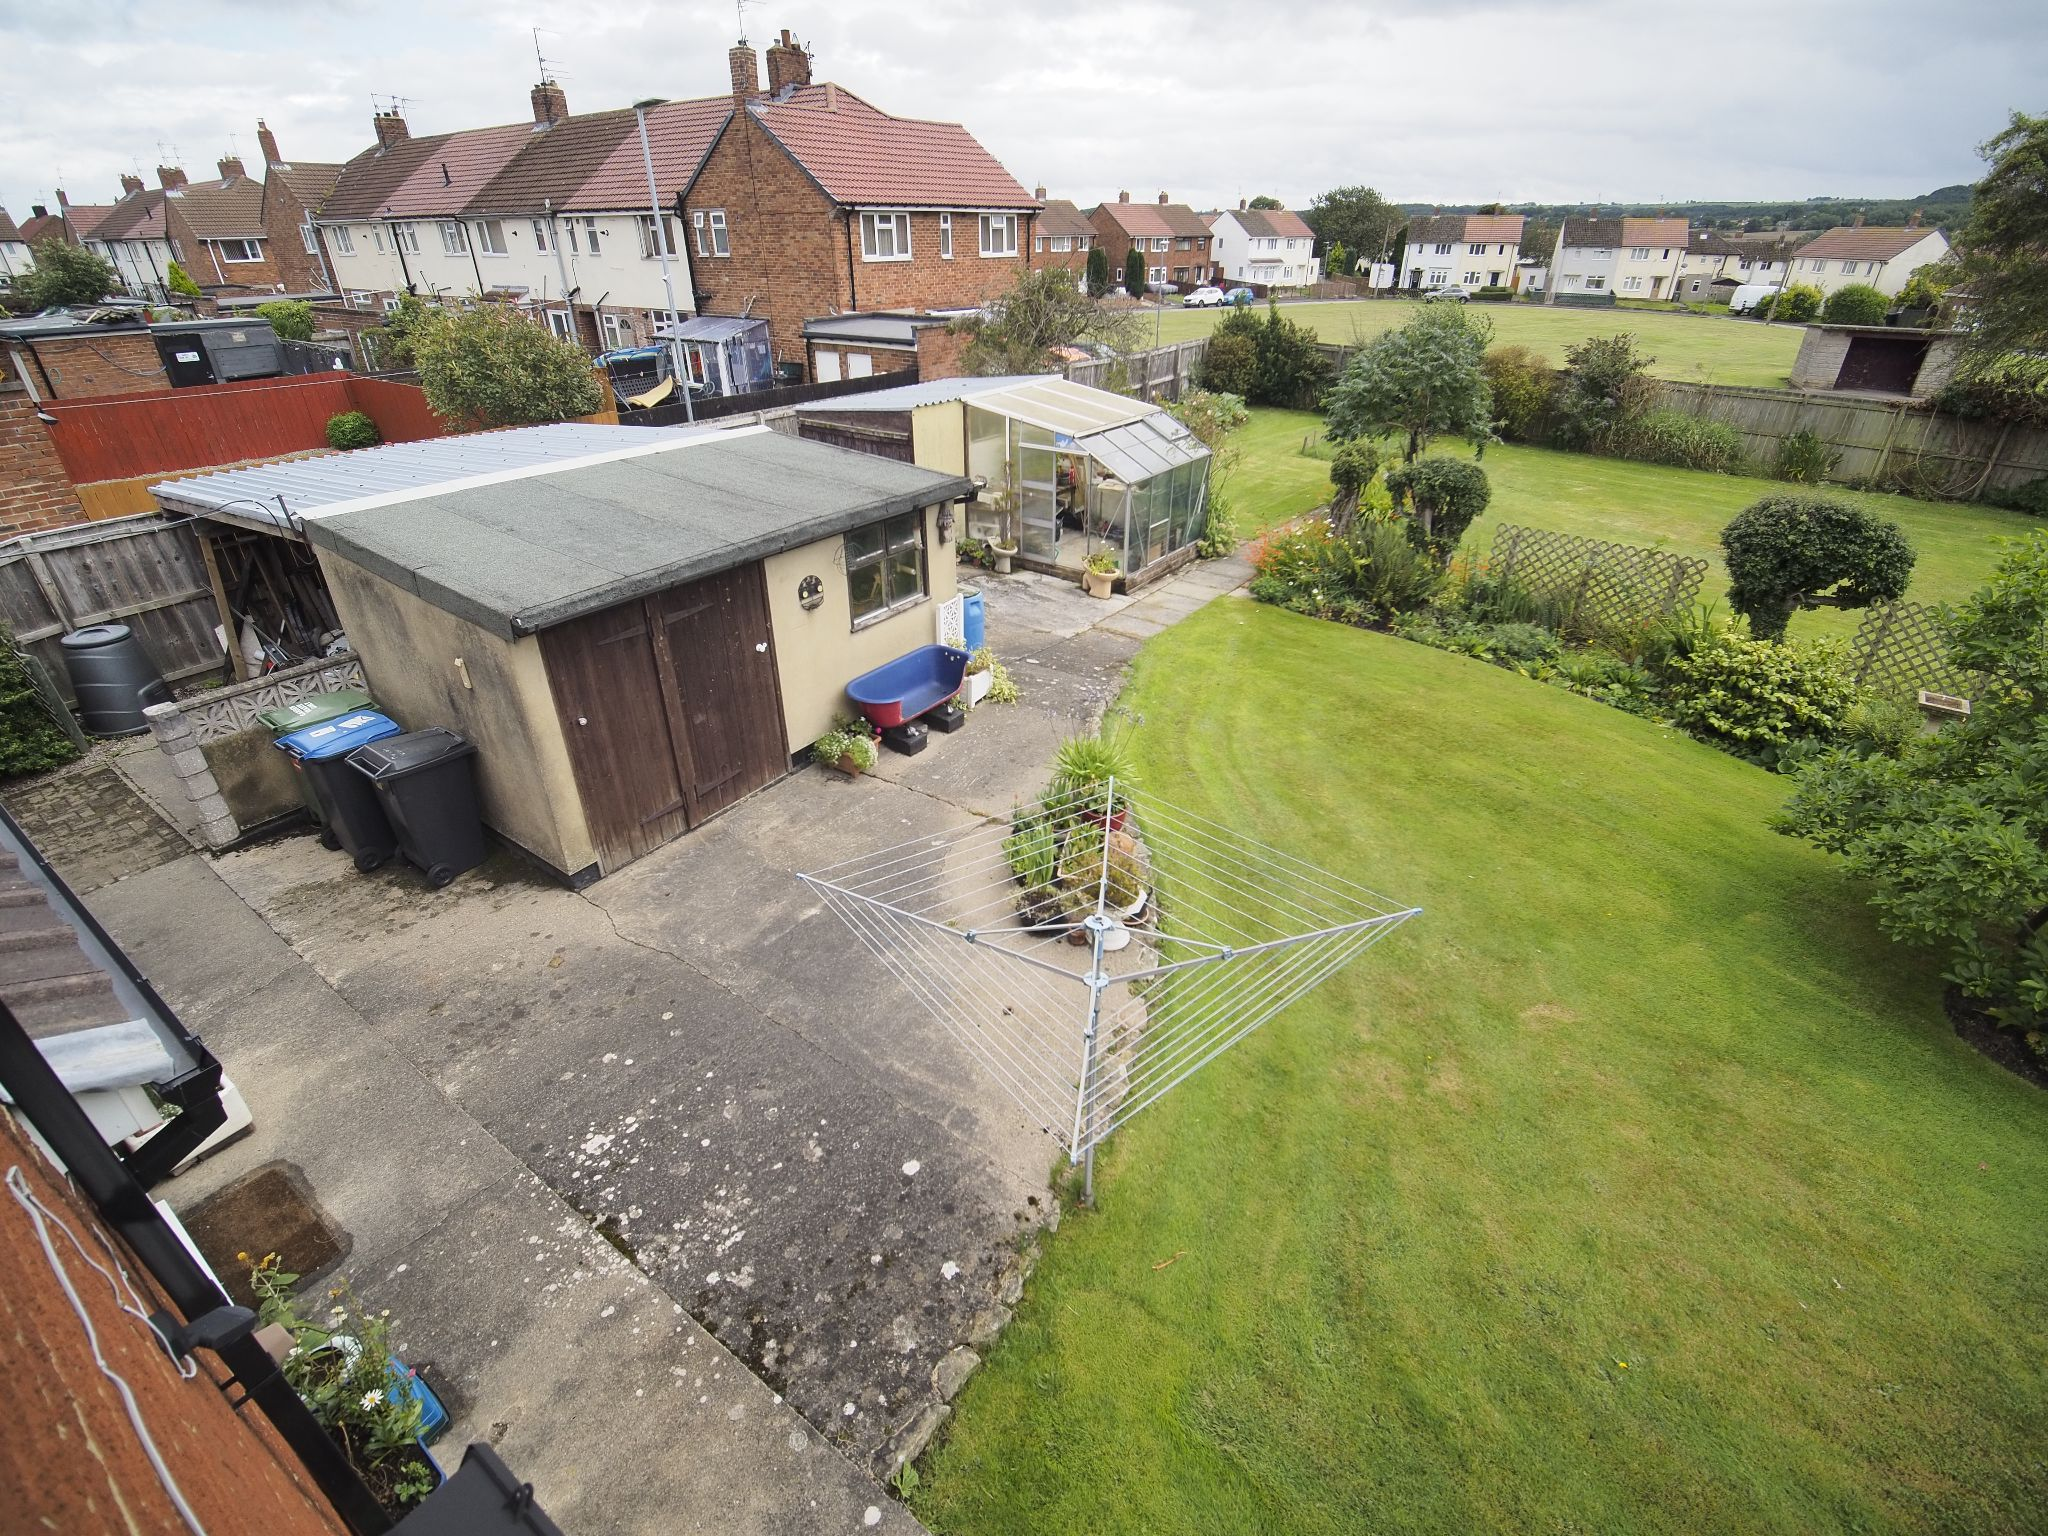 4 bedroom detached house For Sale in Willington - Storage sheds.